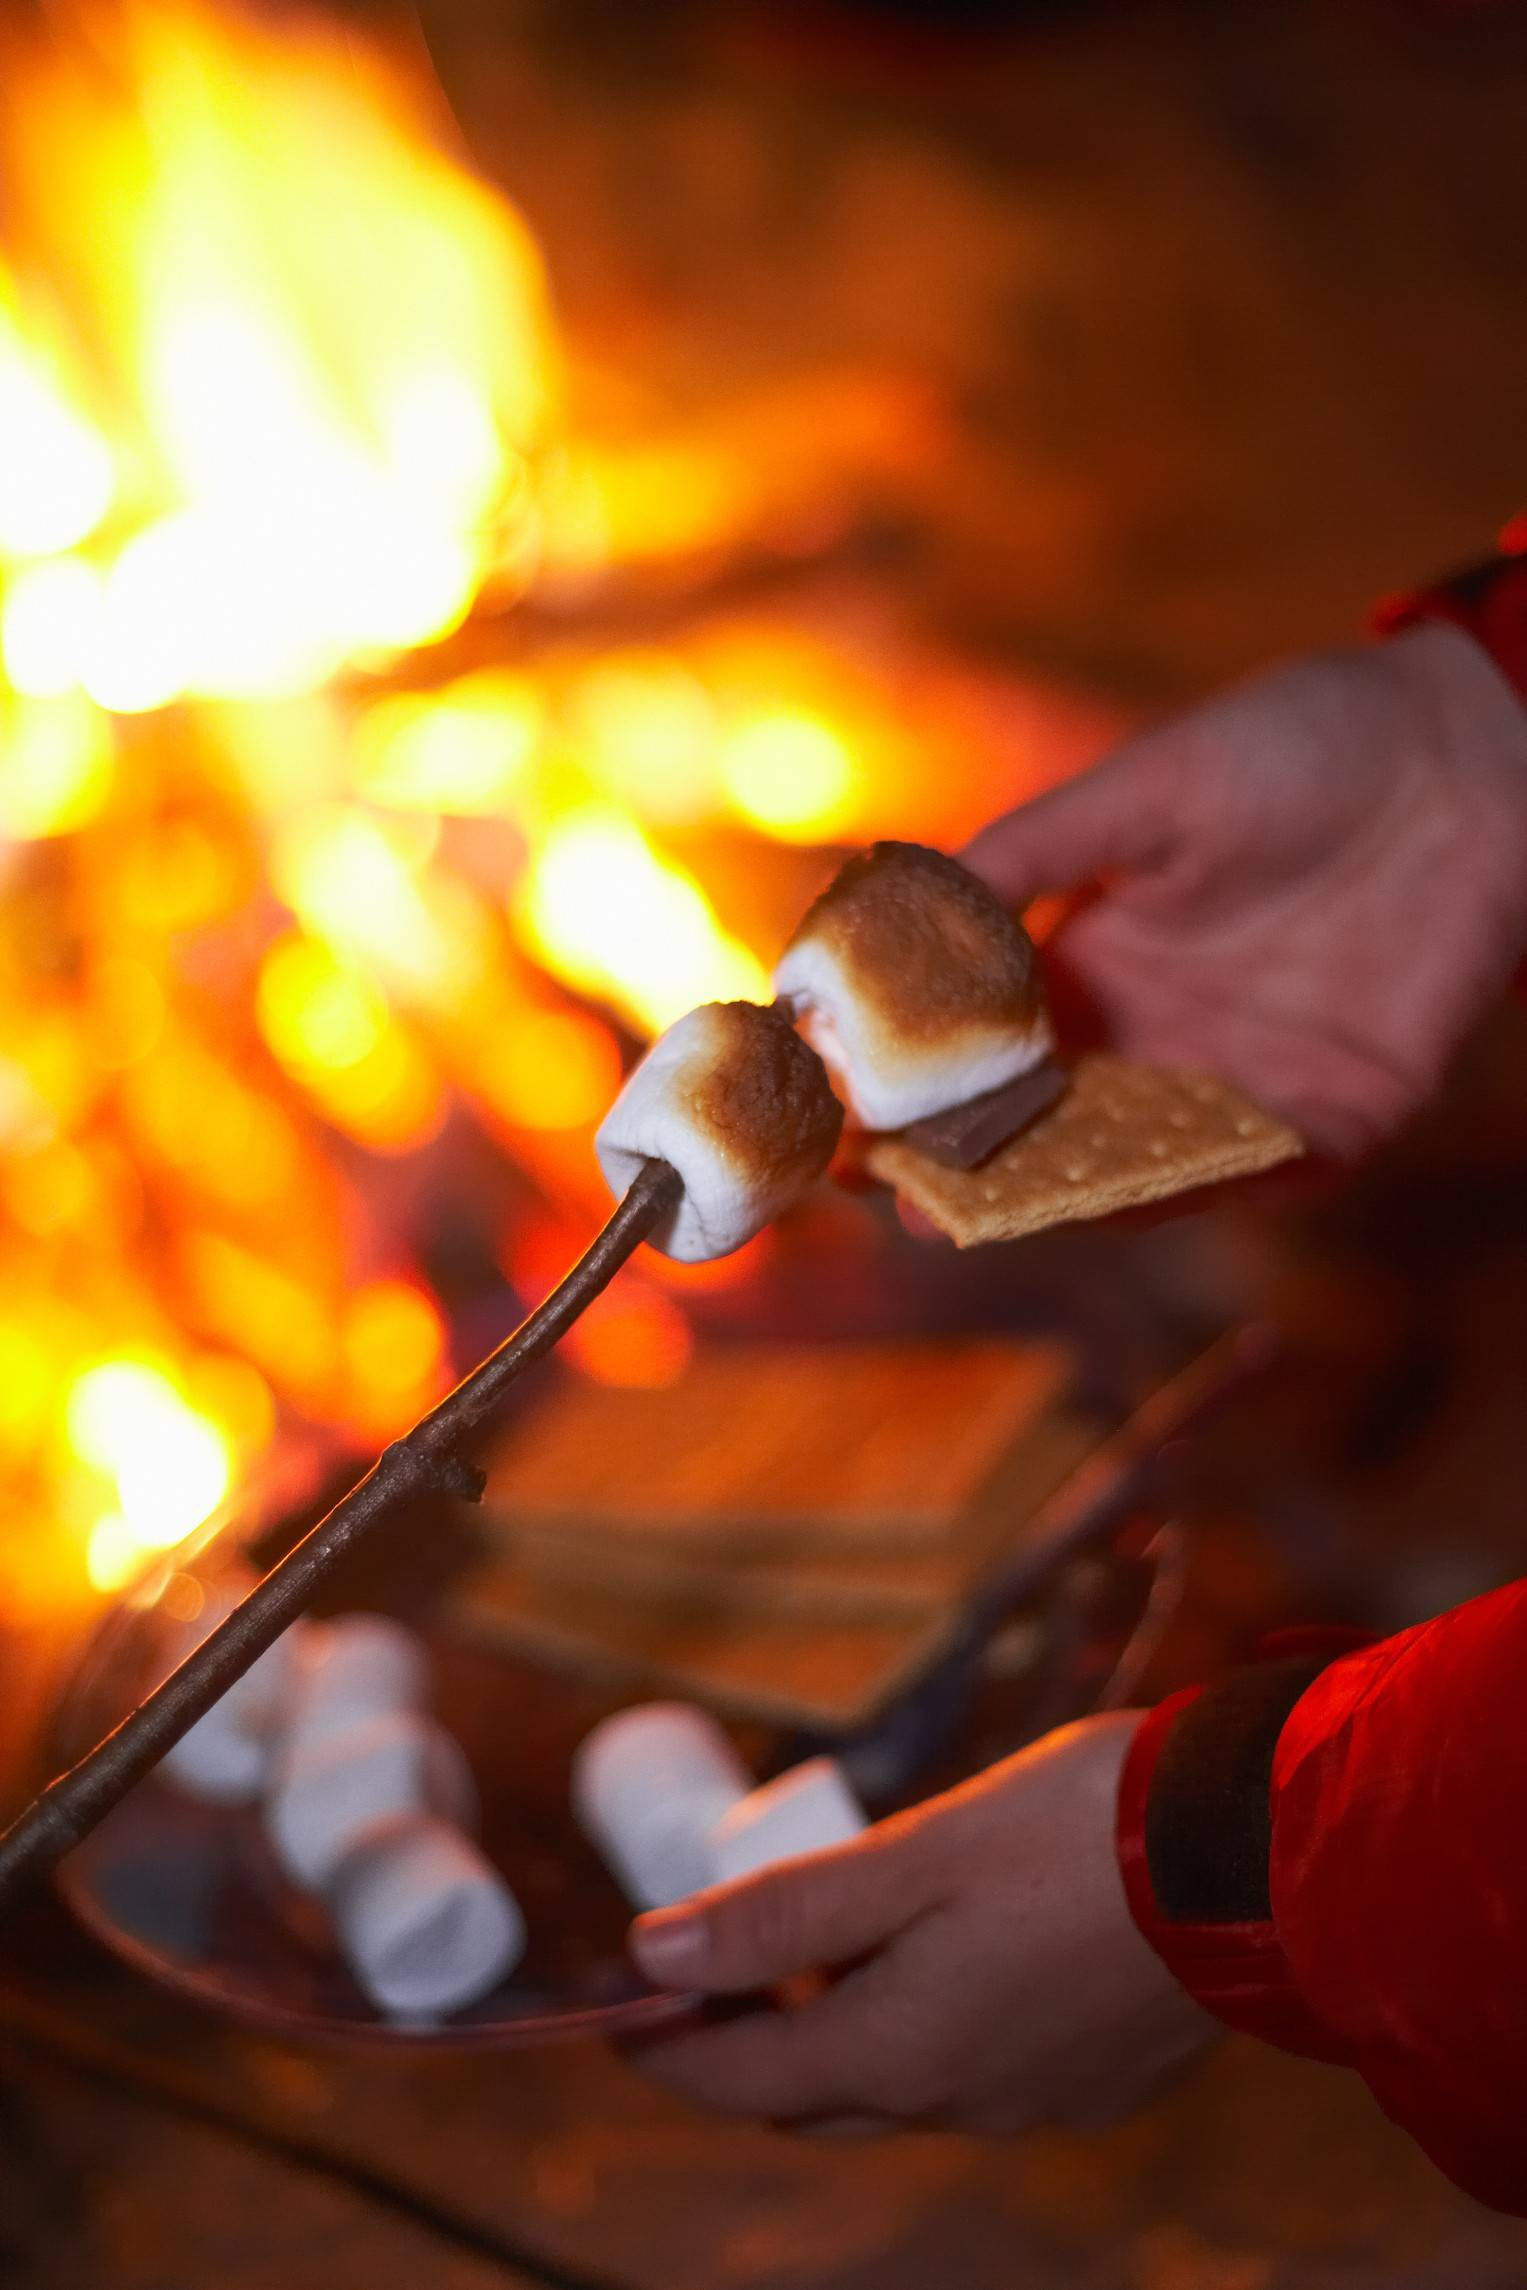 A roaring campfire and s'mores make for a sweet family-friendly Valentine's Day at Prairieview Education Center in Crystal Lake.